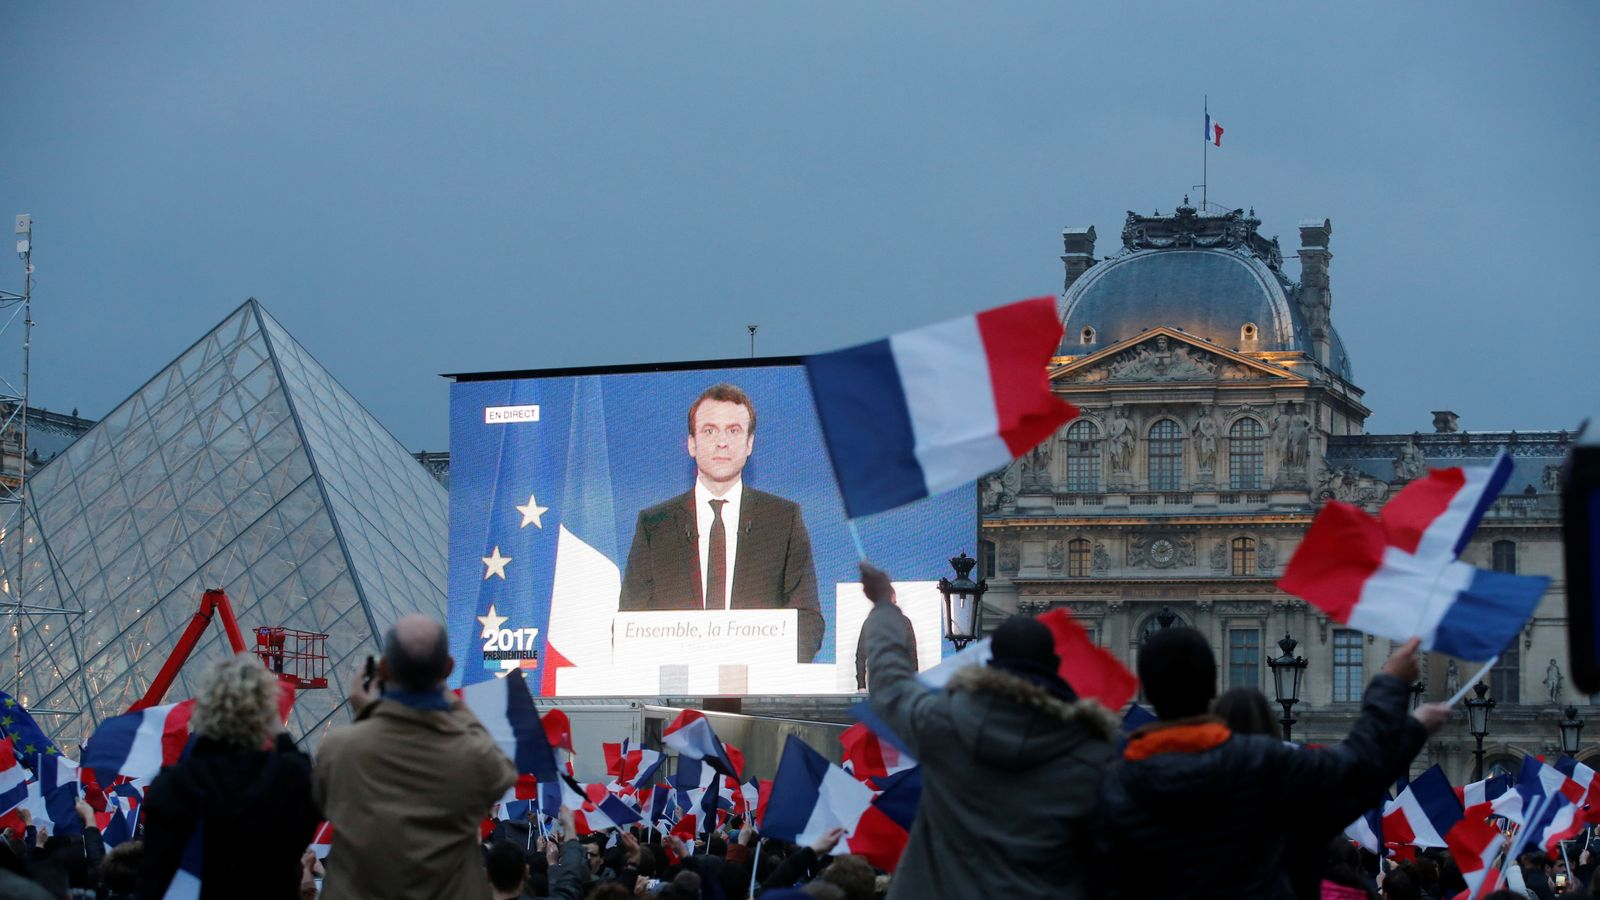 Emmanuel Macron is seen on a giant screen after the results were announced